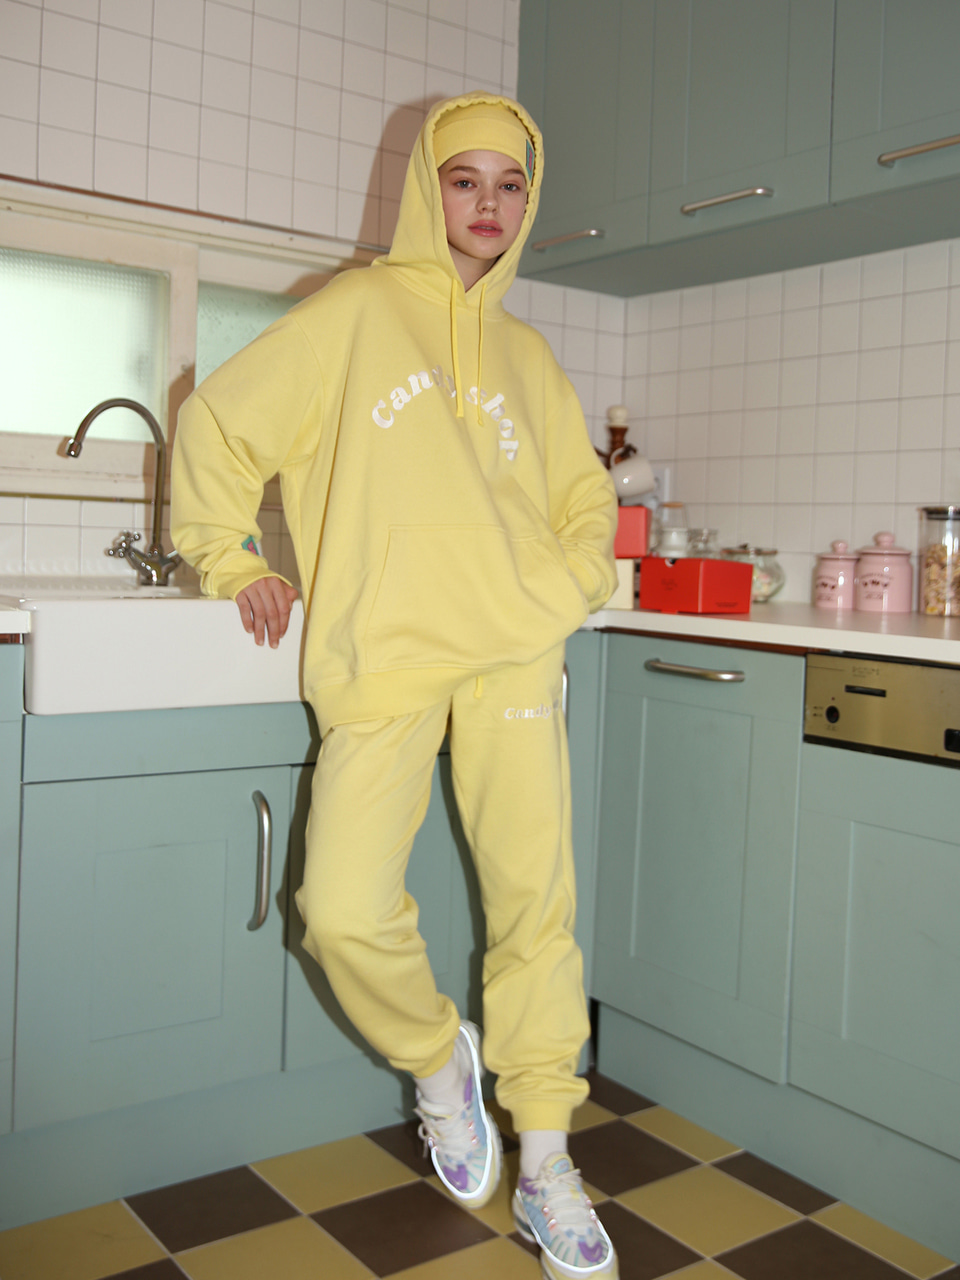 [10%SALE] Candy shop logo sweatpants - LEMON